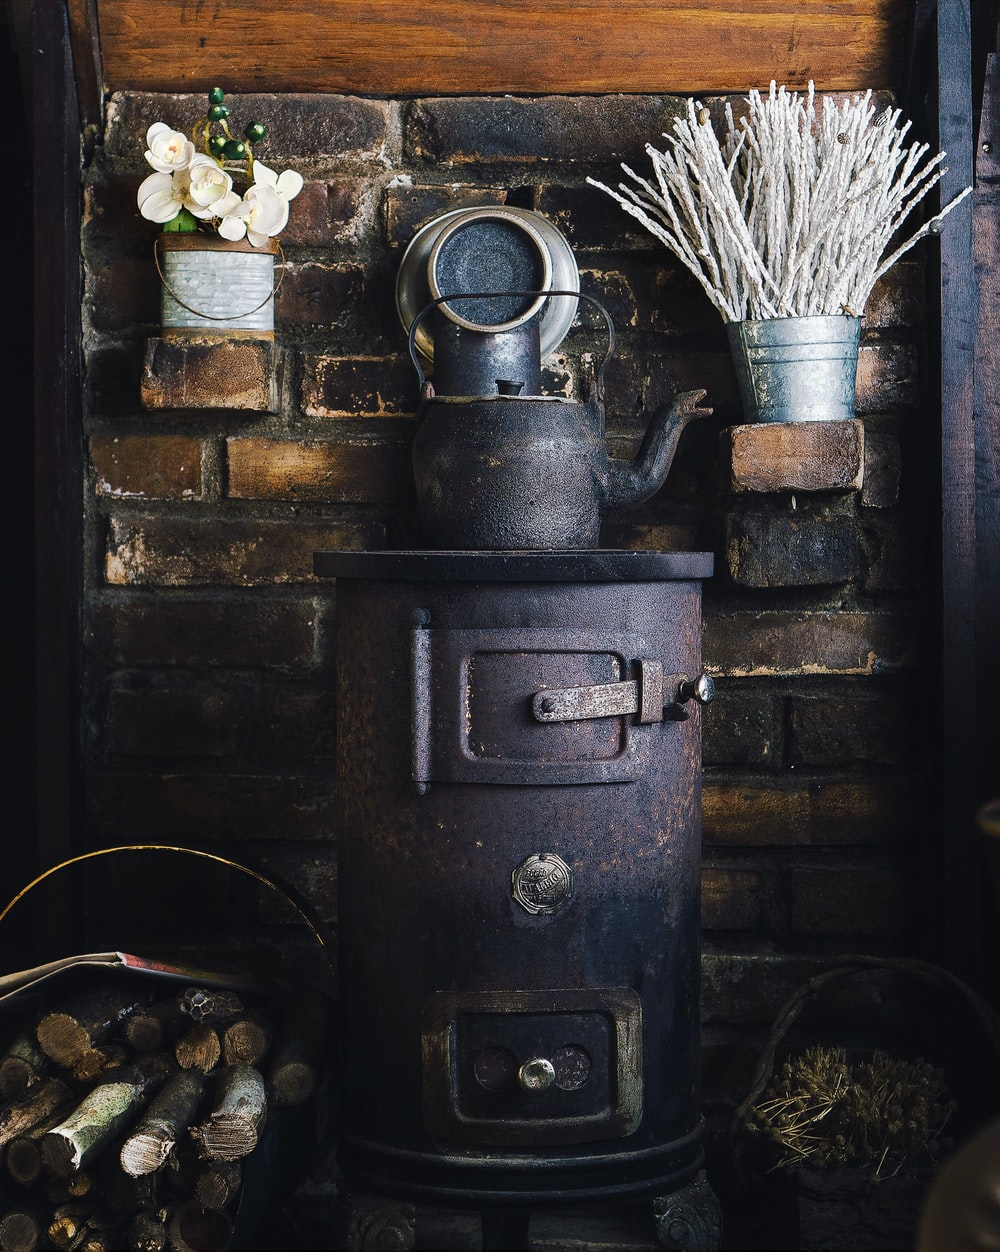 cast-iron teapot on wood burner